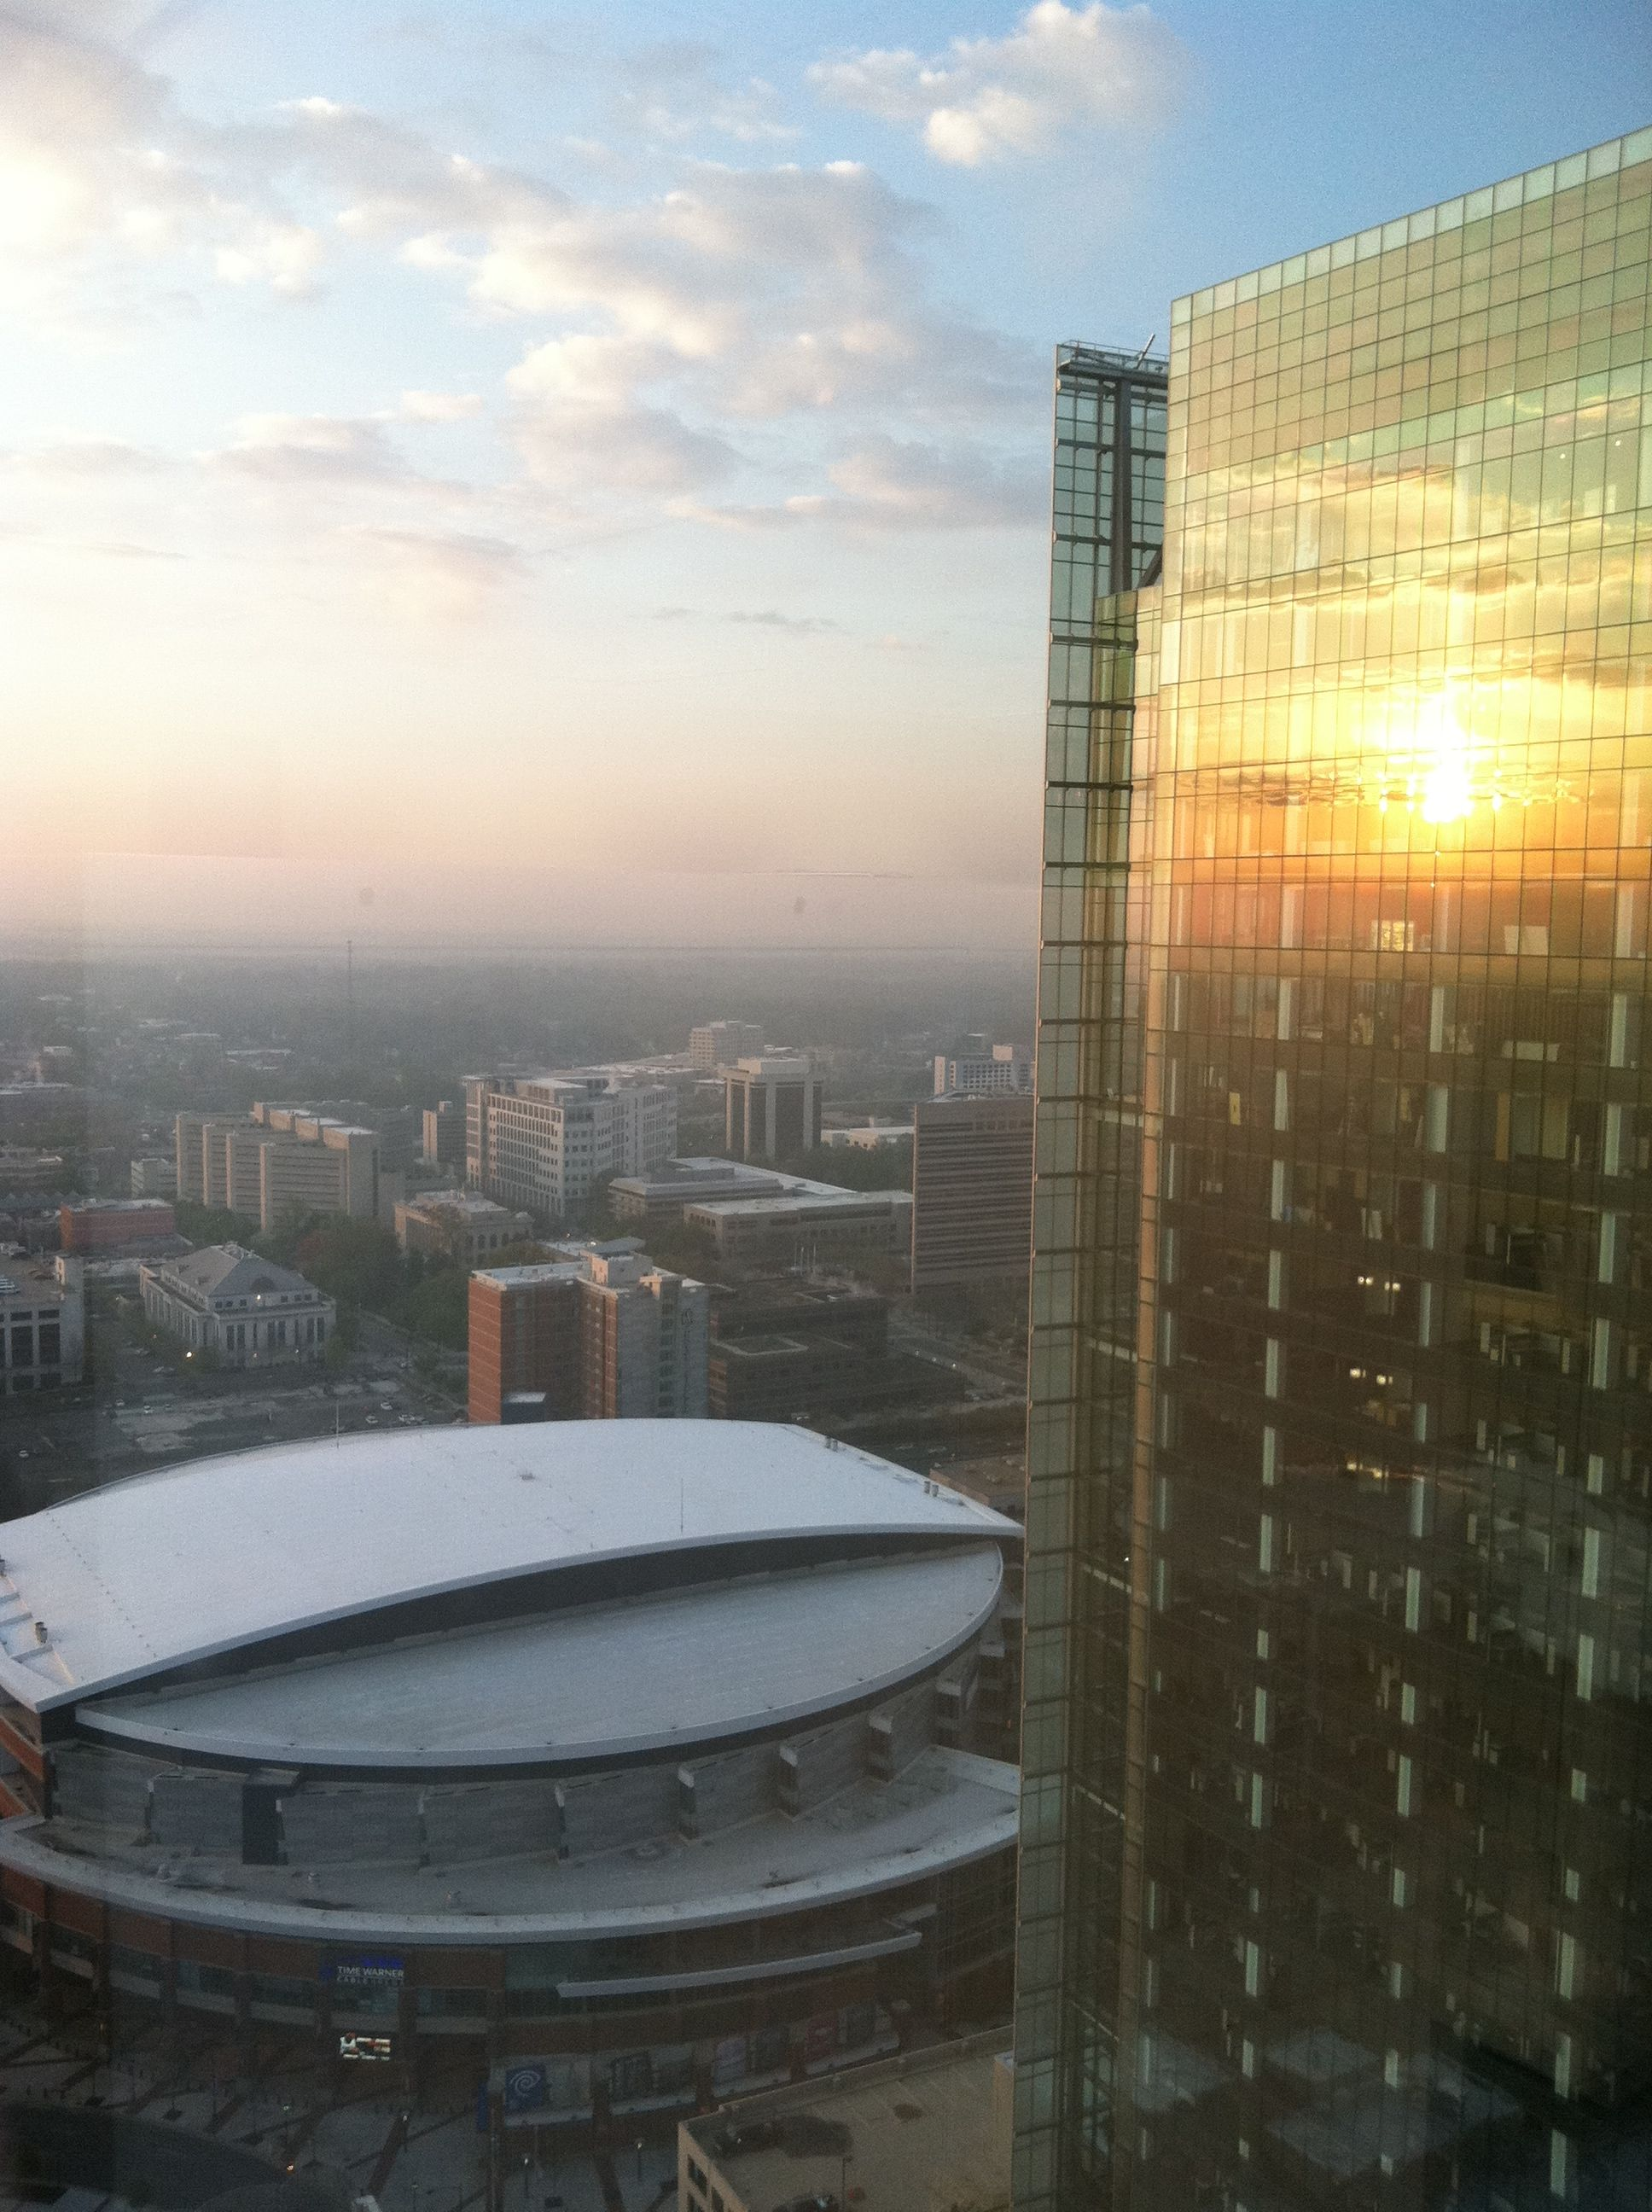 Another view from work over looking time warner arena and